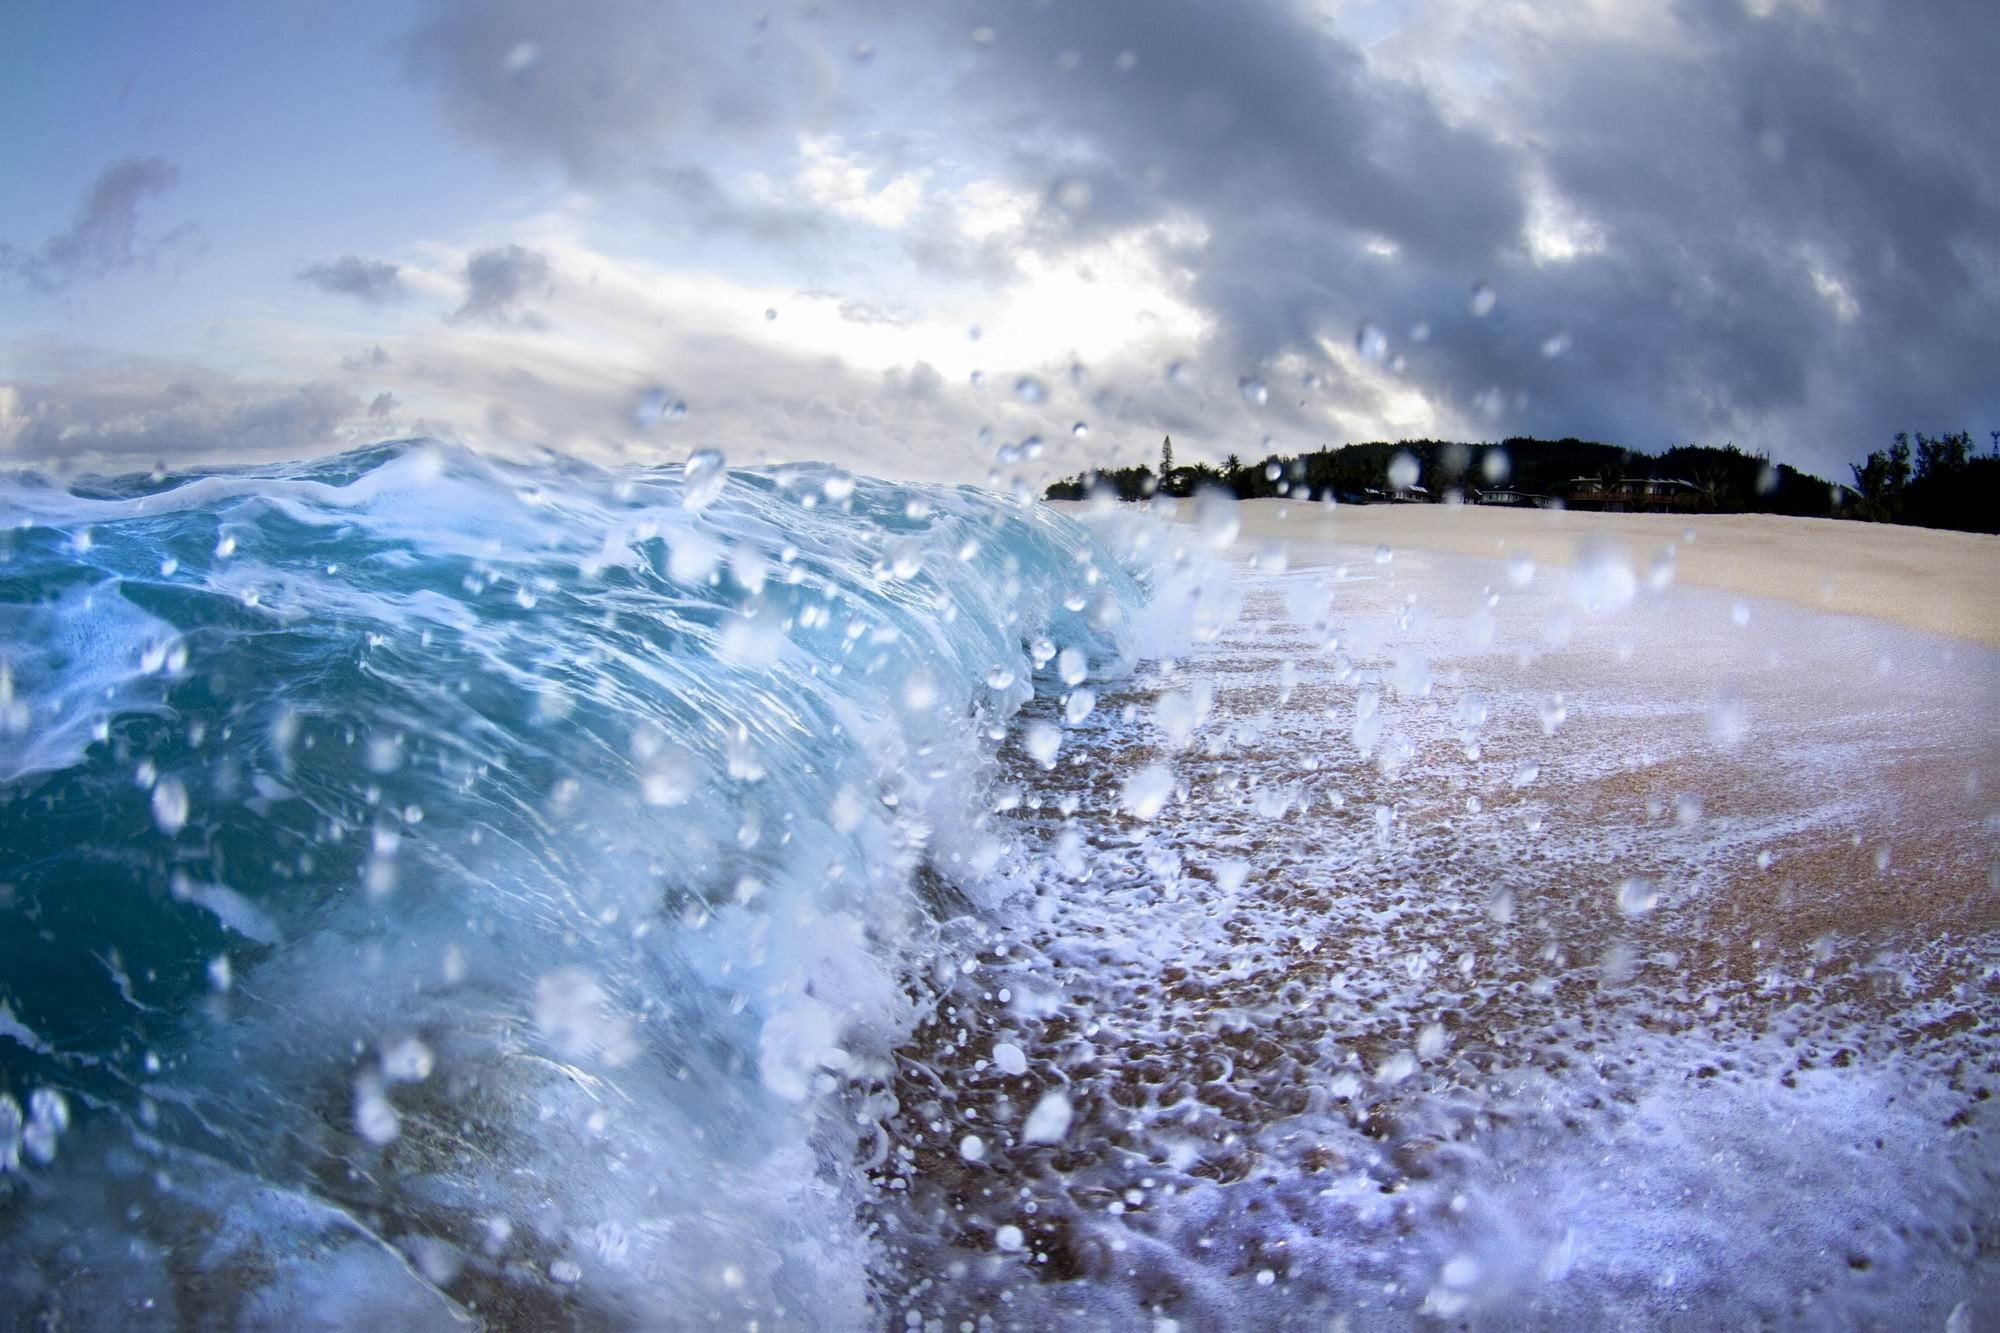 Splashing Ocean - Photography Print on Canvas - Canvas Wall Art